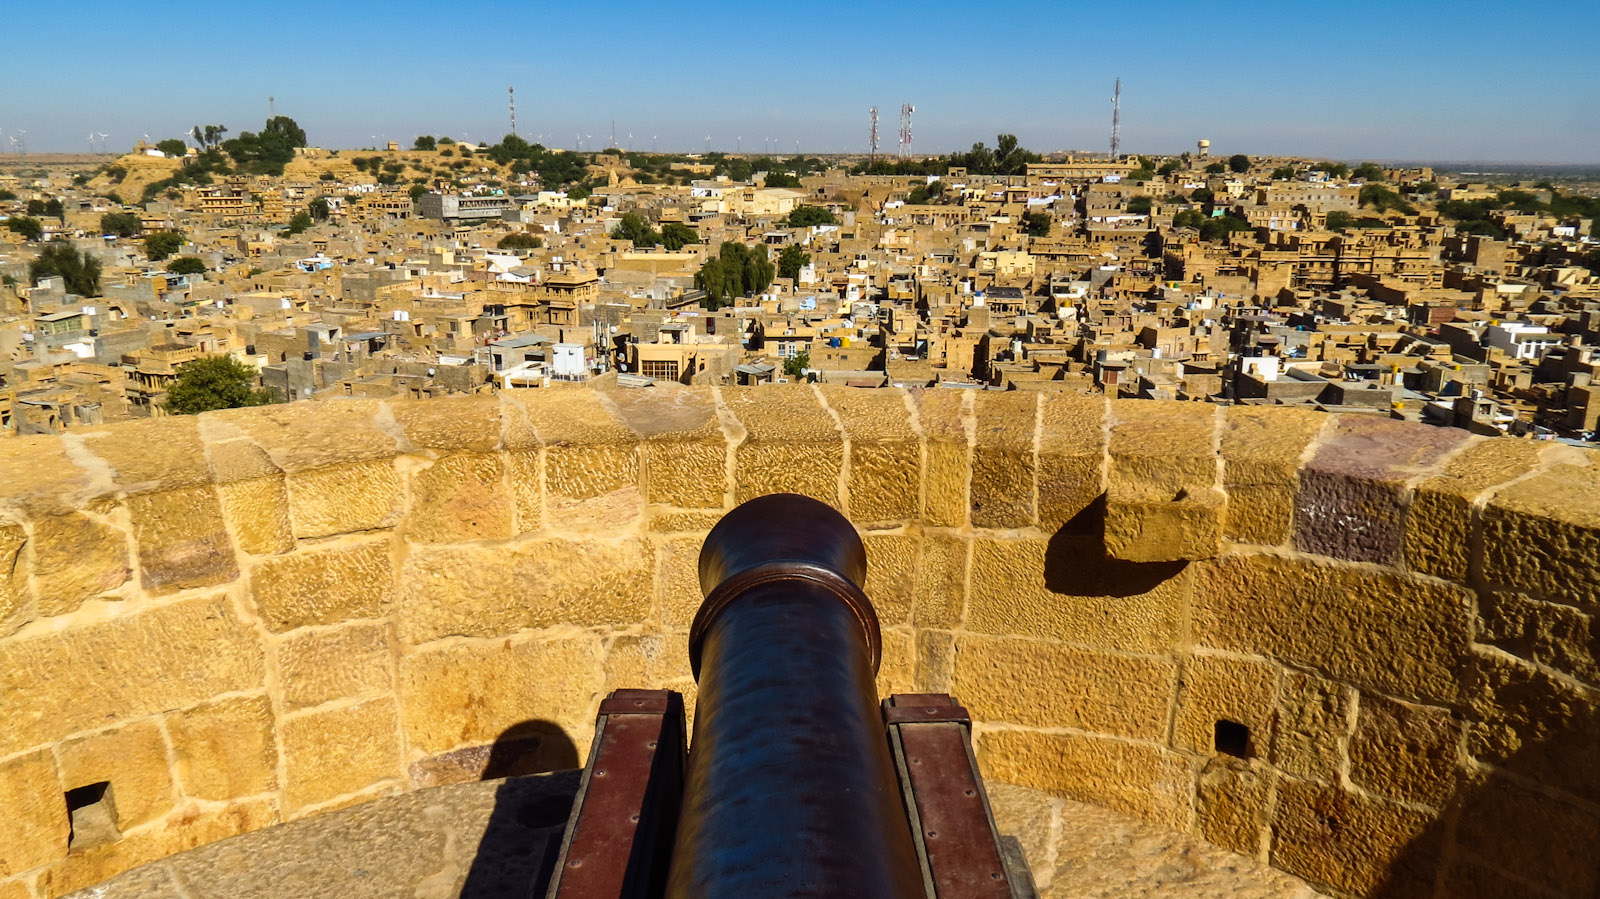 jaiselmer unesco Jaisalmer fort is situated in the city of jaisalmer  was declared a unesco world heritage site under the group hill forts of rajasthan.